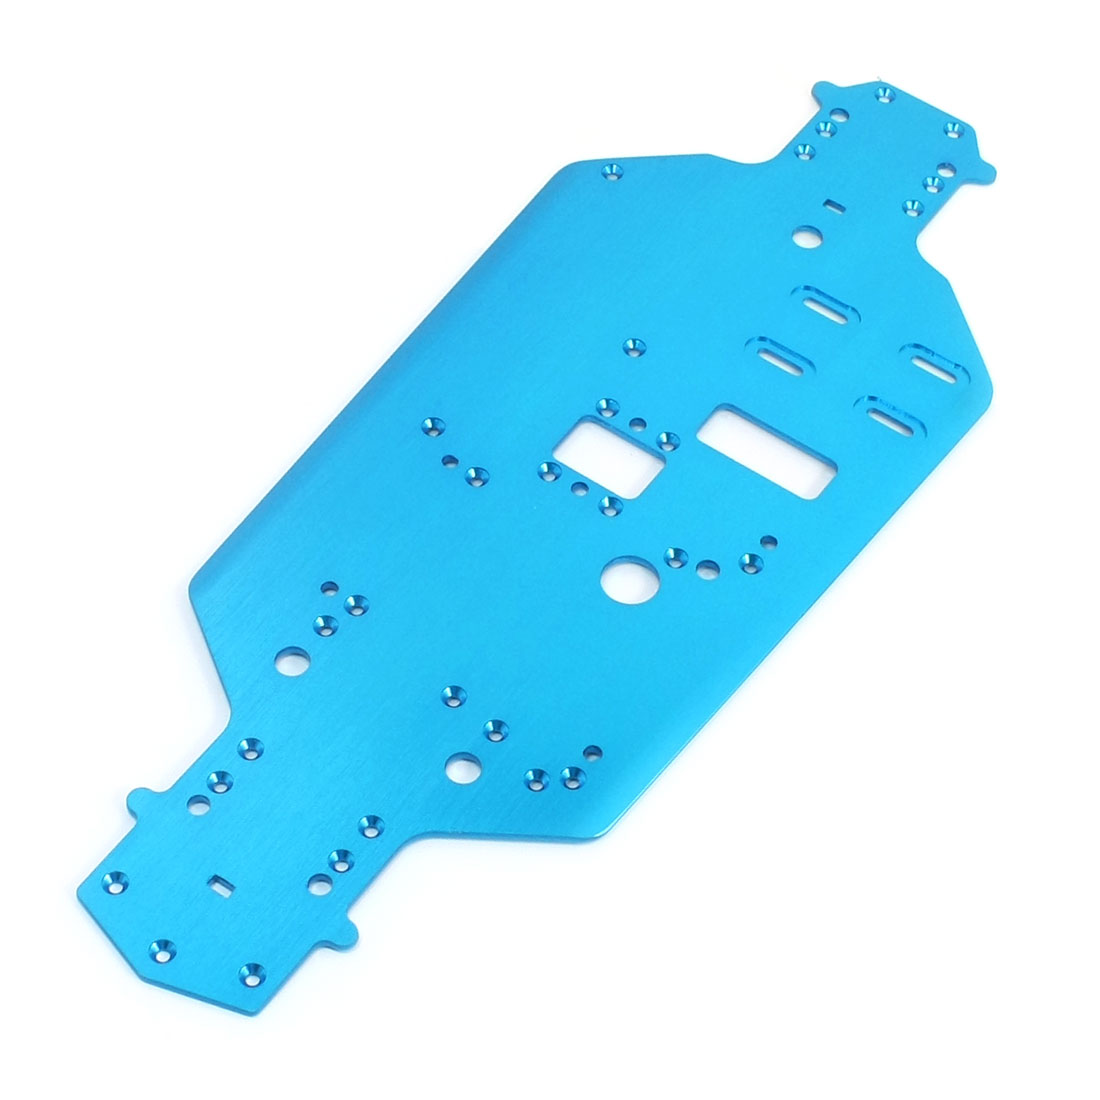 1/10 RC Model Car Spare Parts Racing Blue Aluminum Chassis 02163